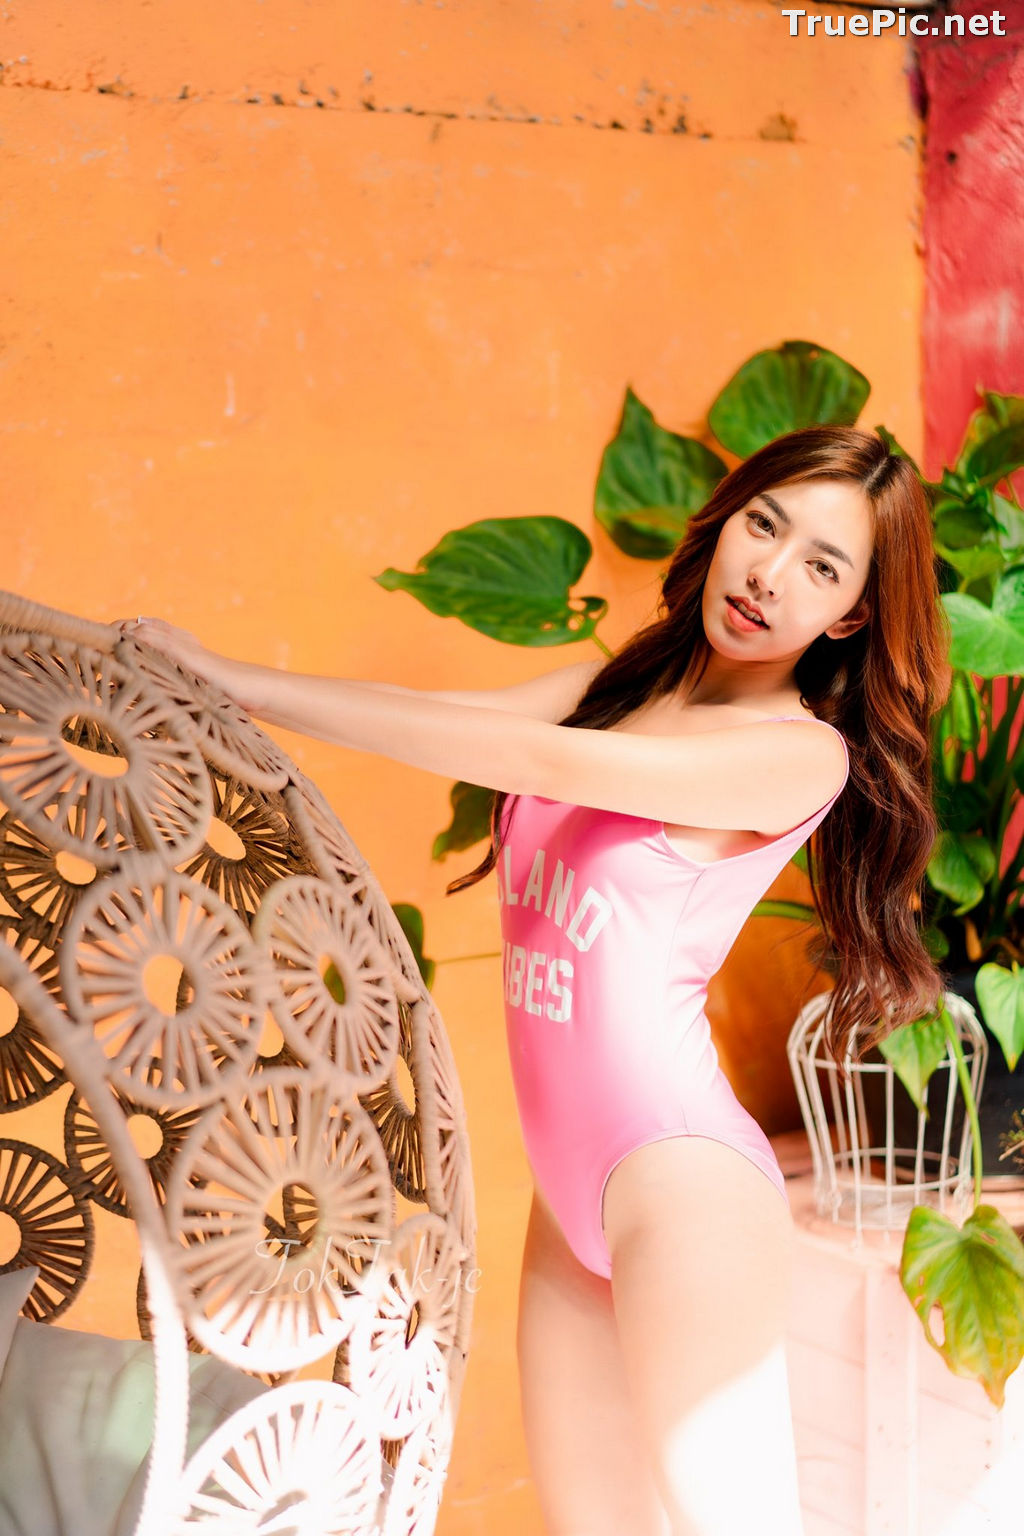 Image Thailand Model - Champ Phawida - Let's Swim With Pink Monokini - TruePic.net - Picture-7